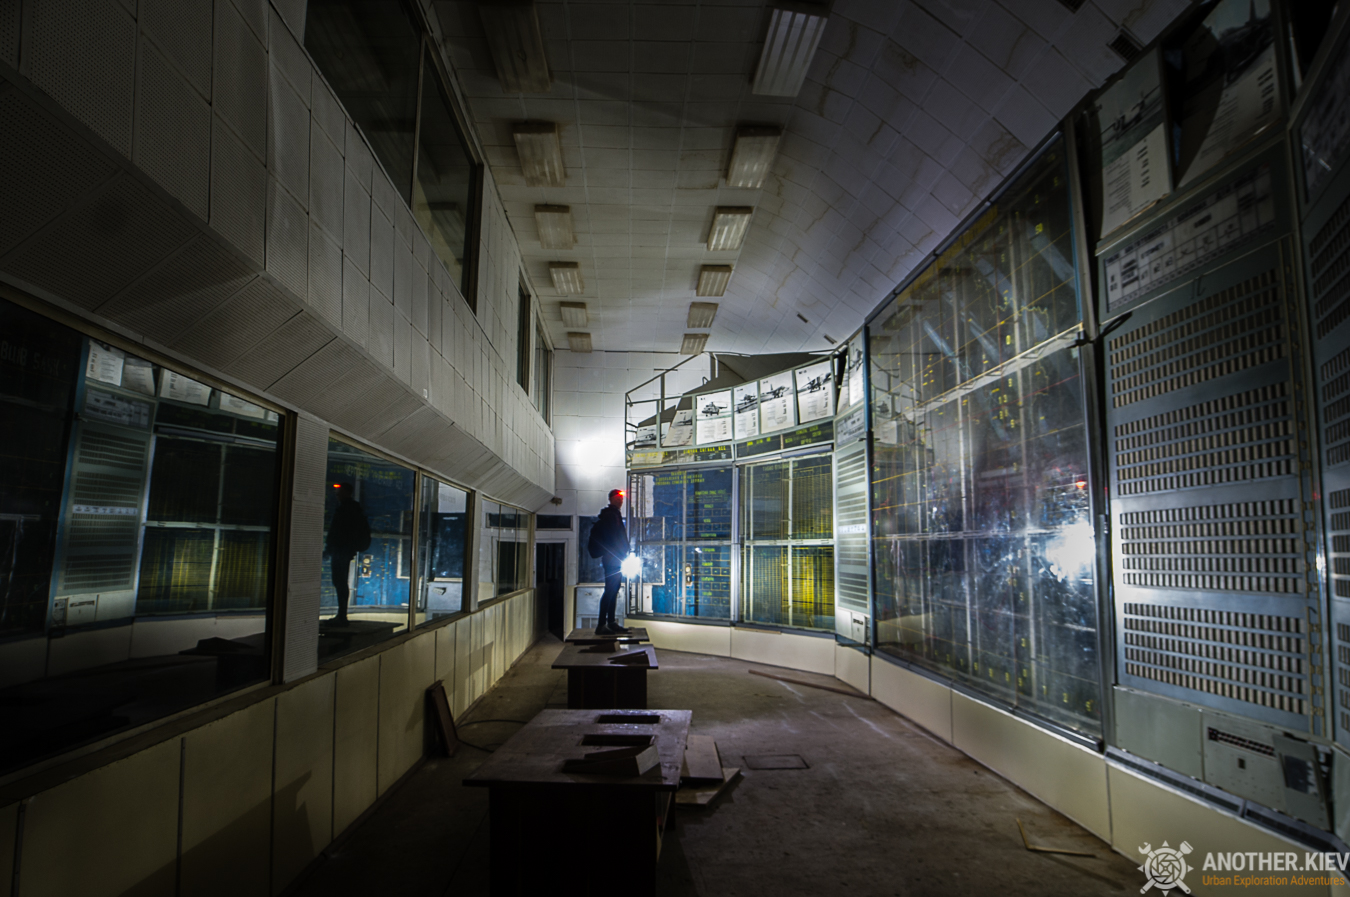 main hall of airforces abandoned bunker